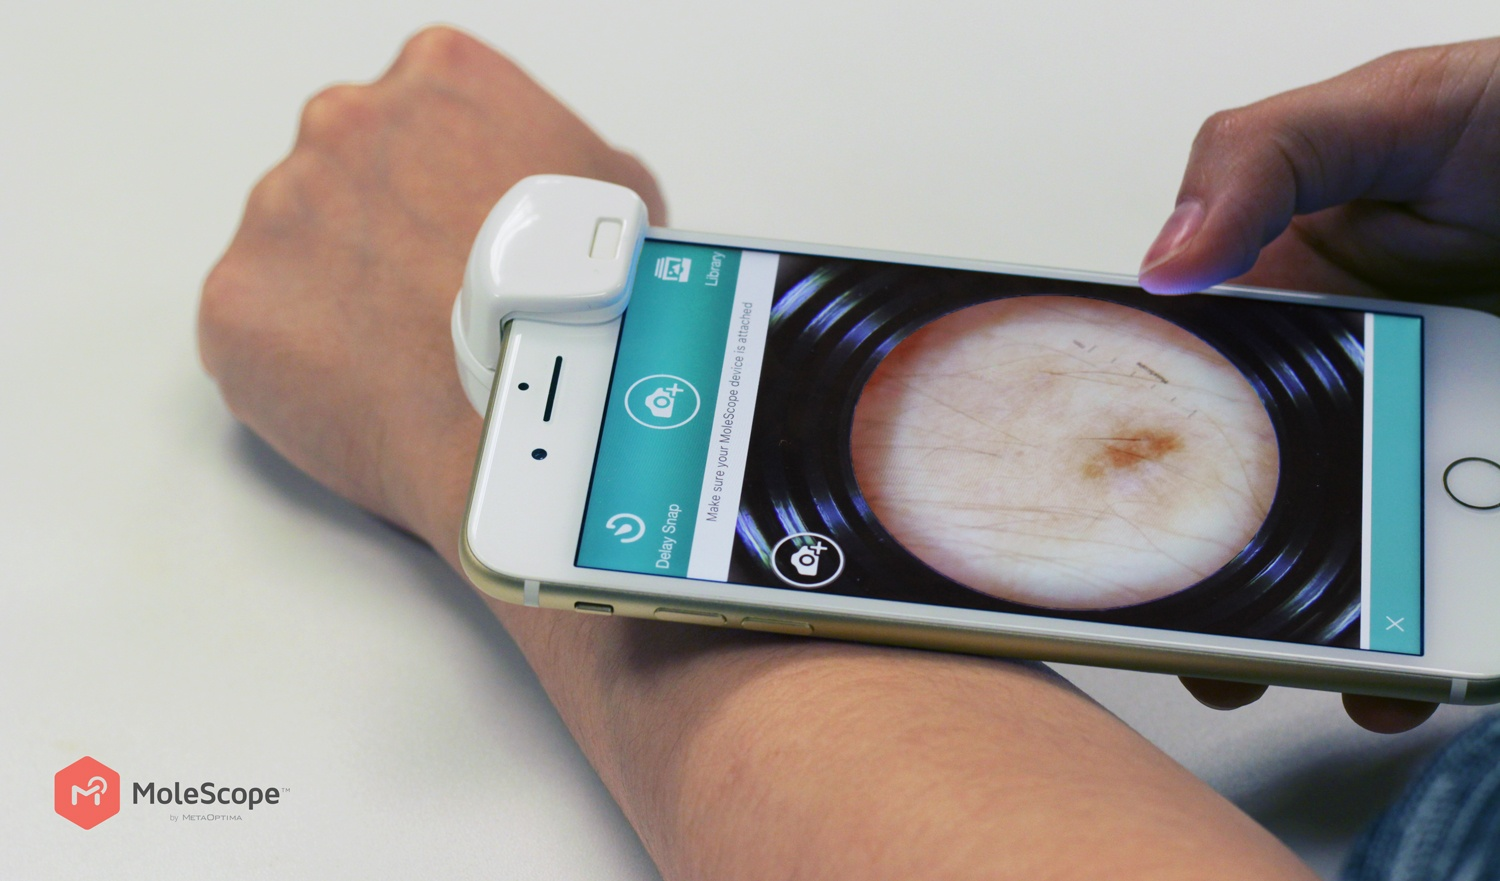 Mobile dermoscopes are empowering patients to perform own self-examinations